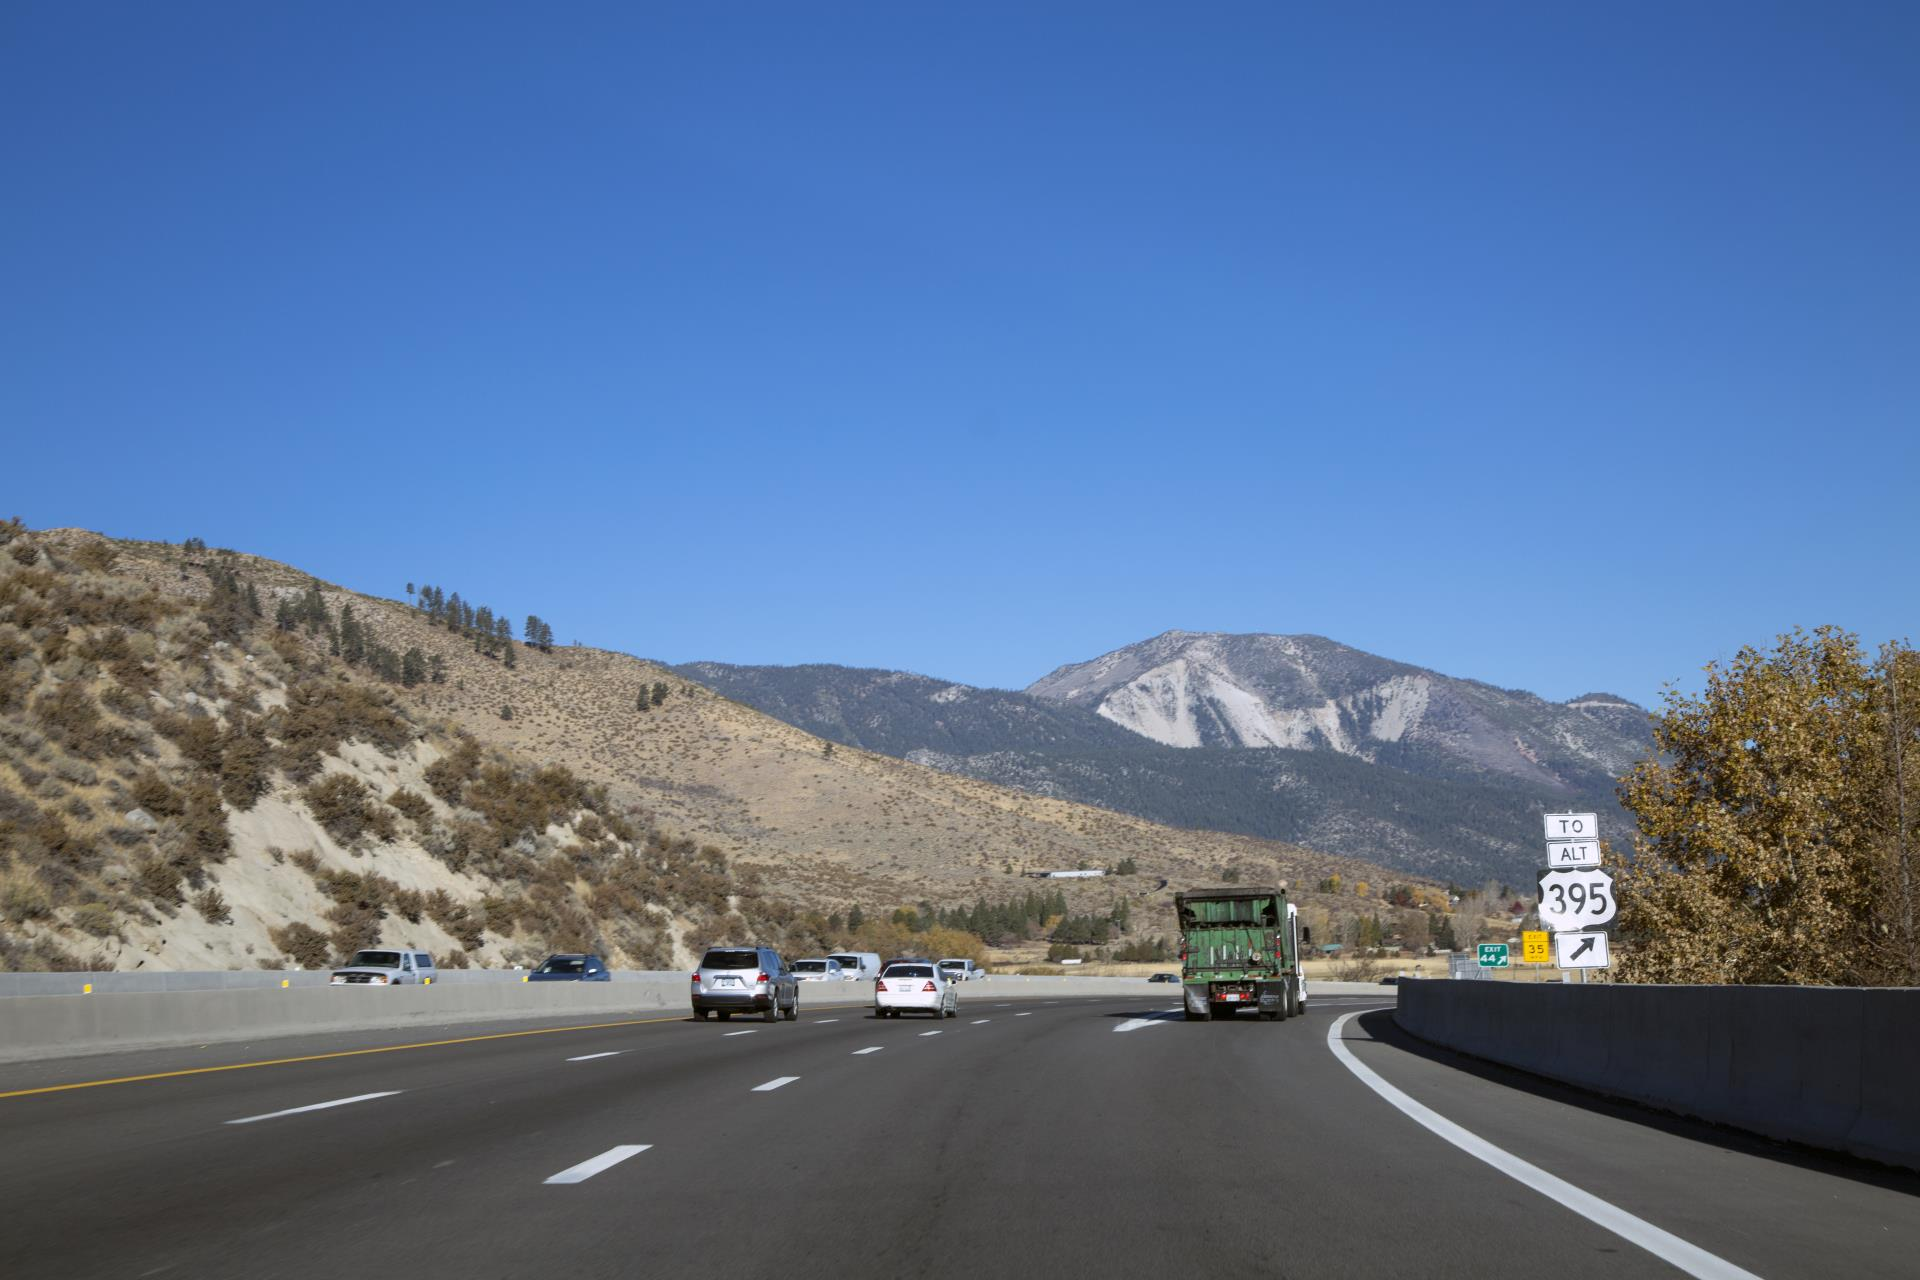 North U.S. 395/I-580 in Carson City at Eastlake Boulevard Exit